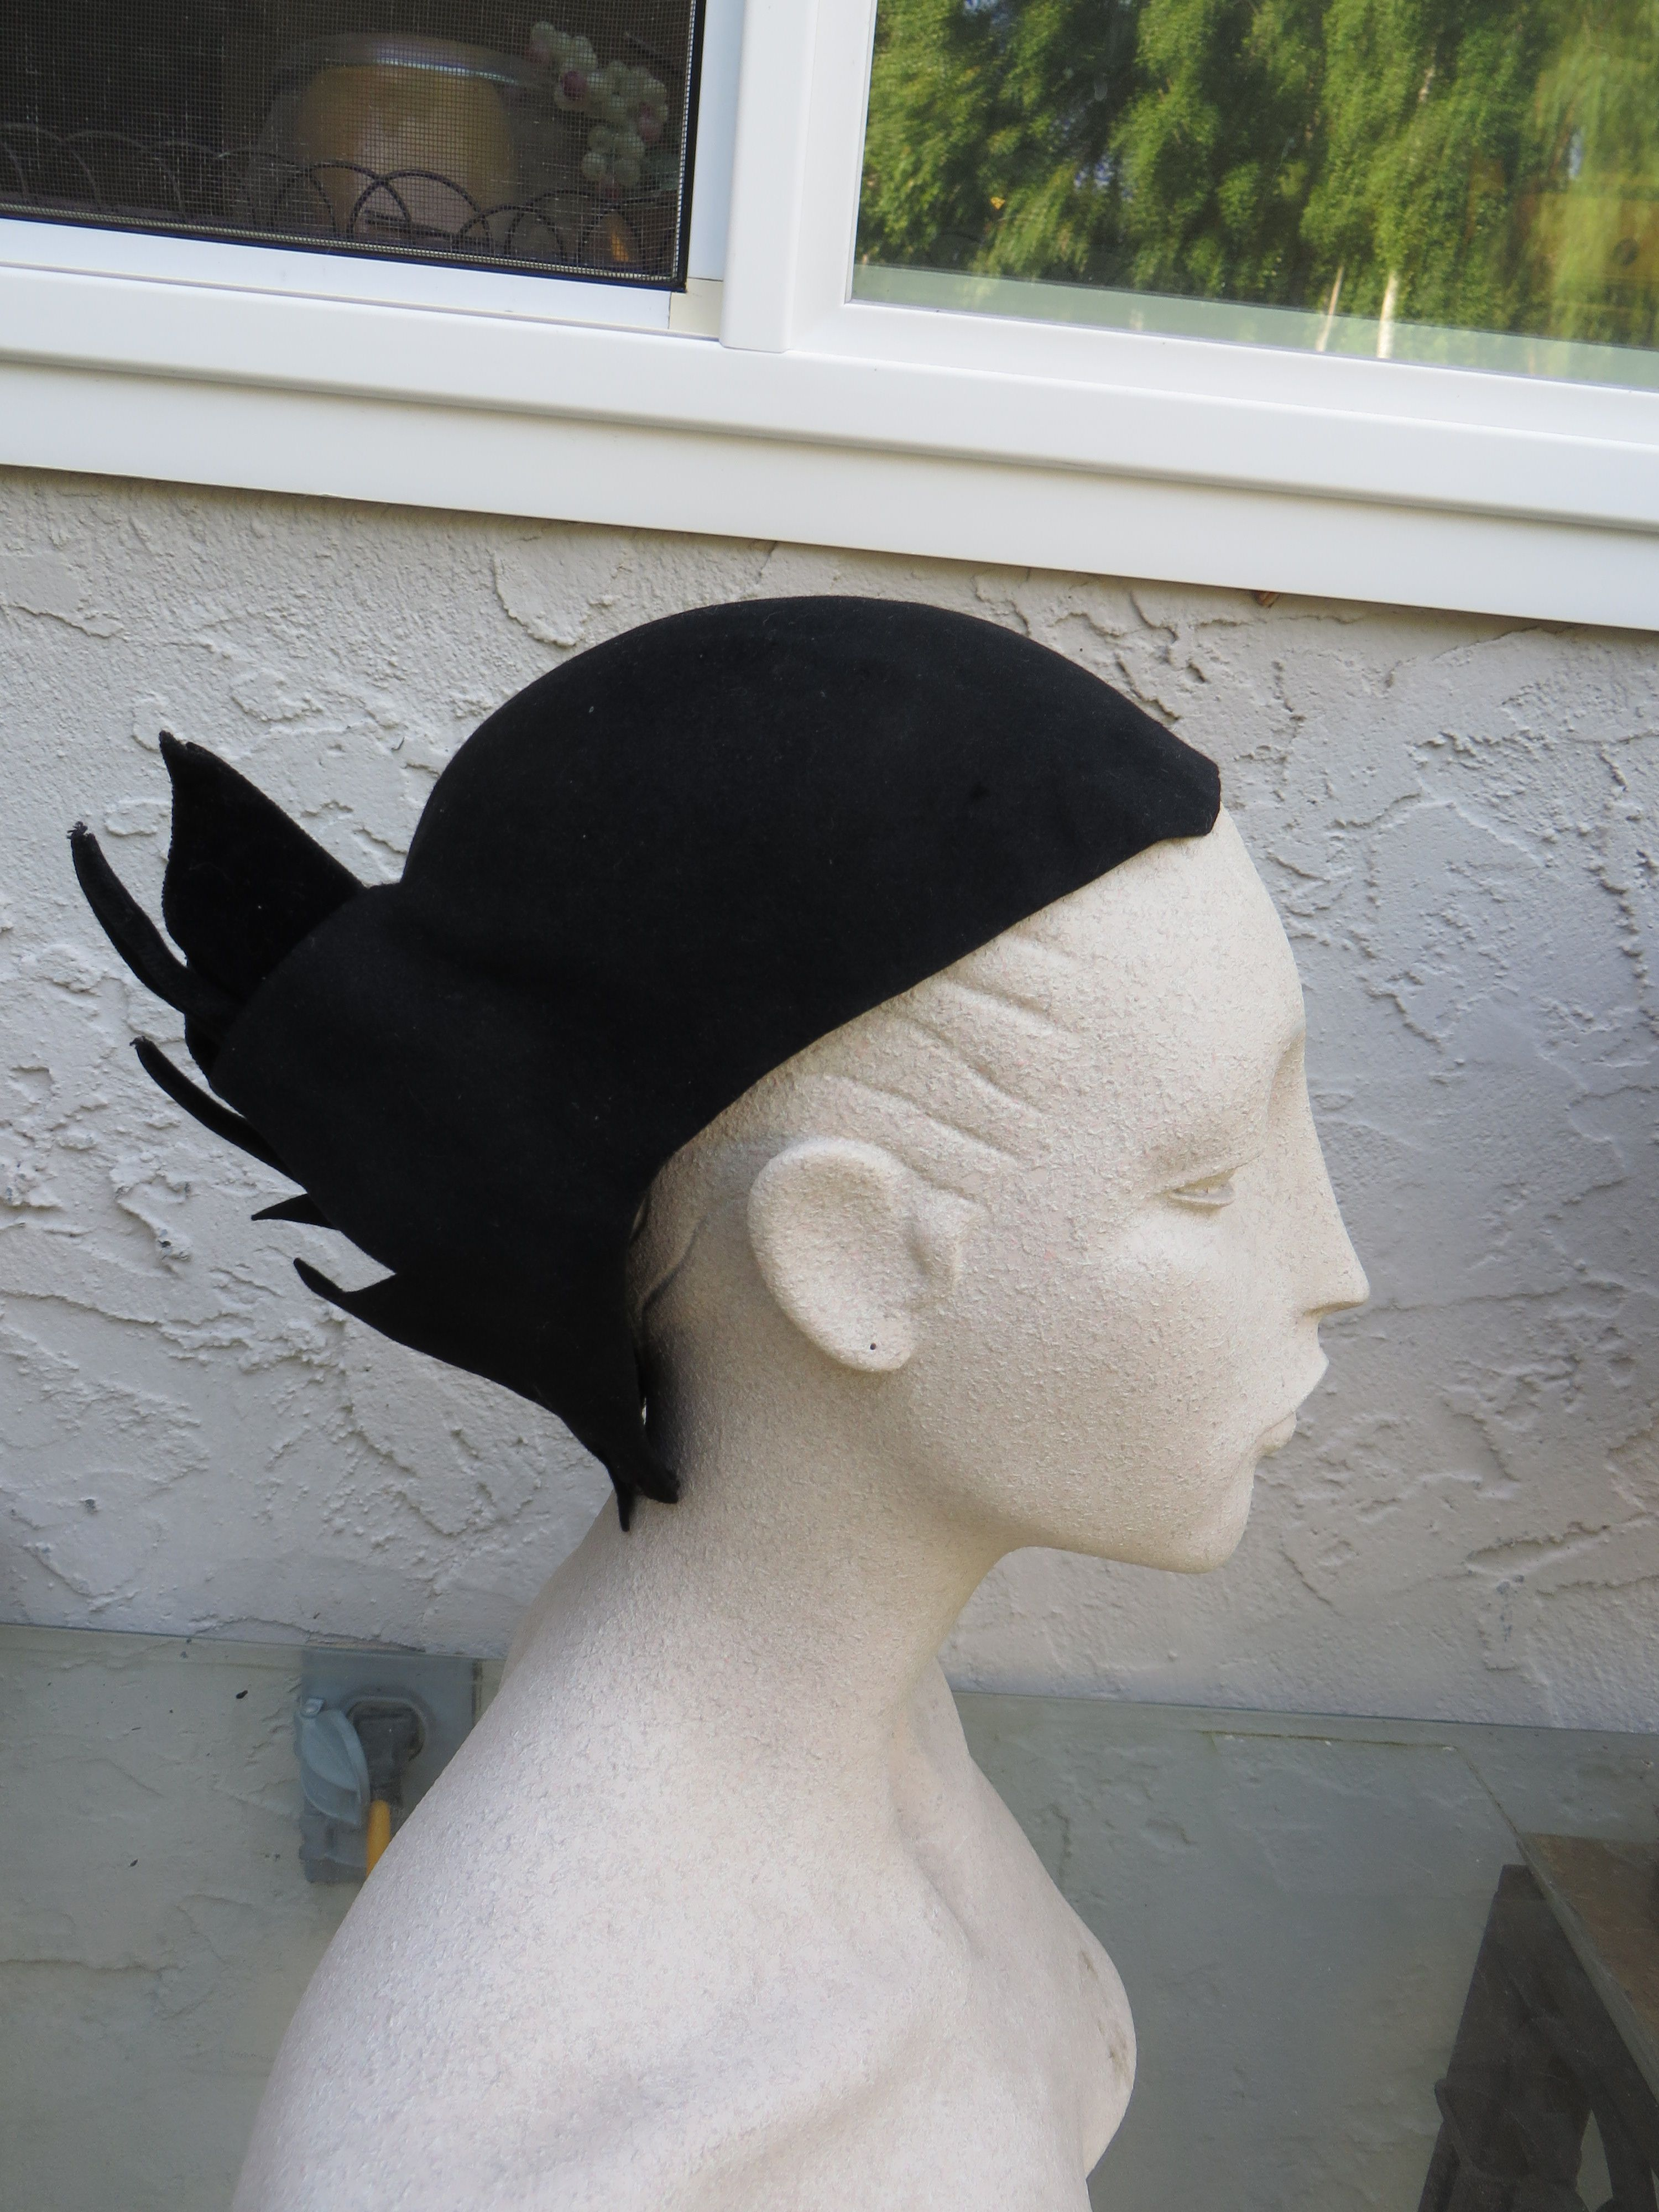 Armani Hat. New find. Tring to get info on it. Looks to be made of felt or wool. Any info would be appreciated. Could be a runway piece. Label say Giorgio Armani Made in Italy